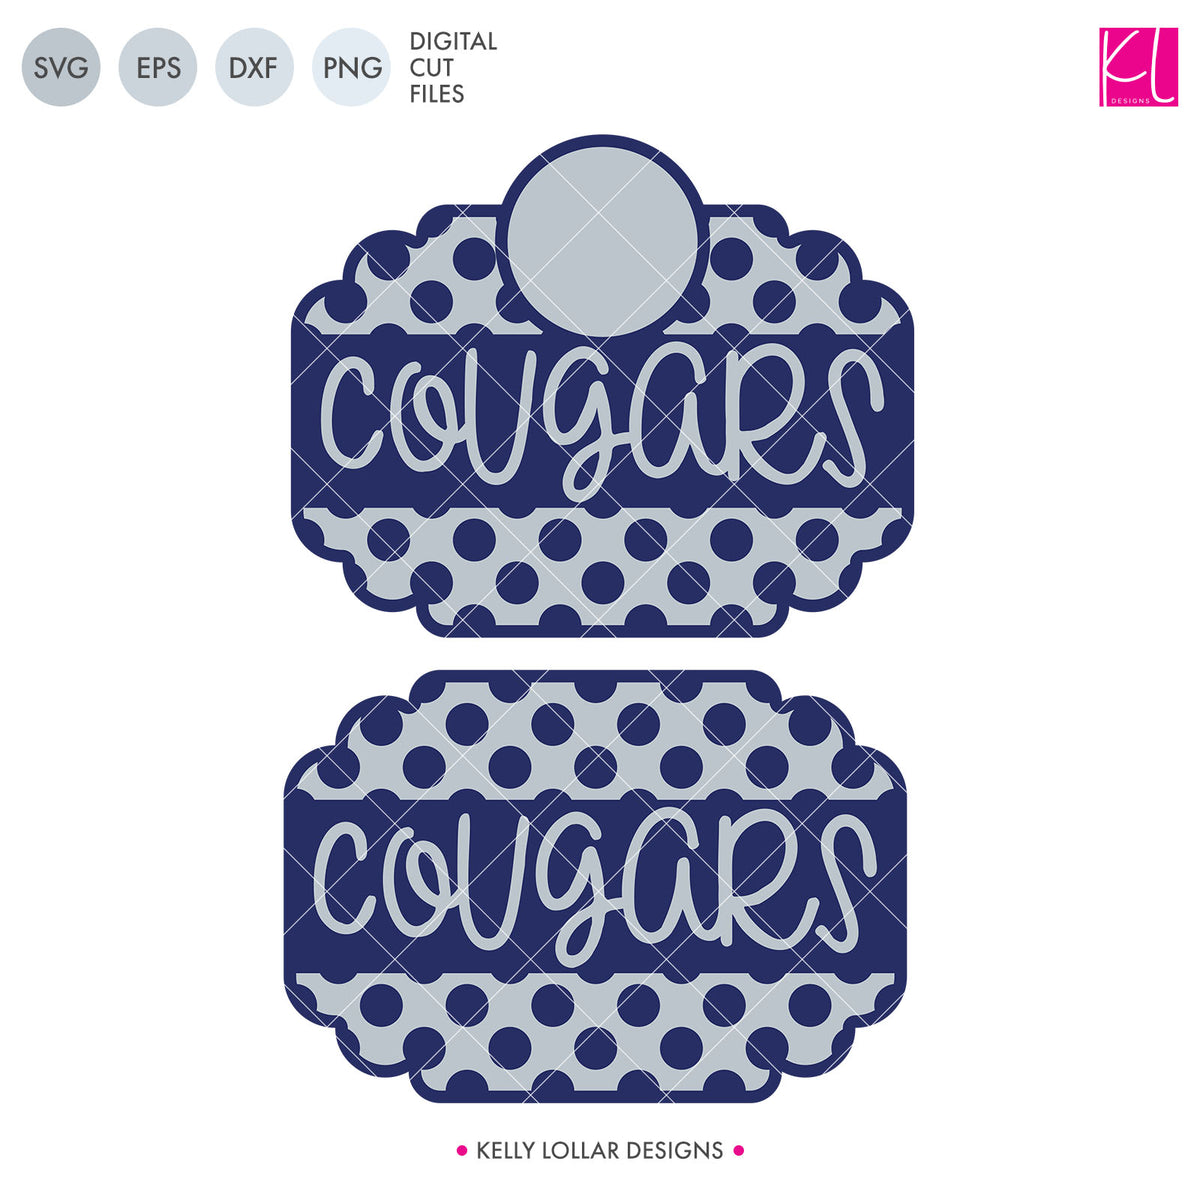 Cougars Mascot Bundle | SVG DXF EPS PNG Cut Files